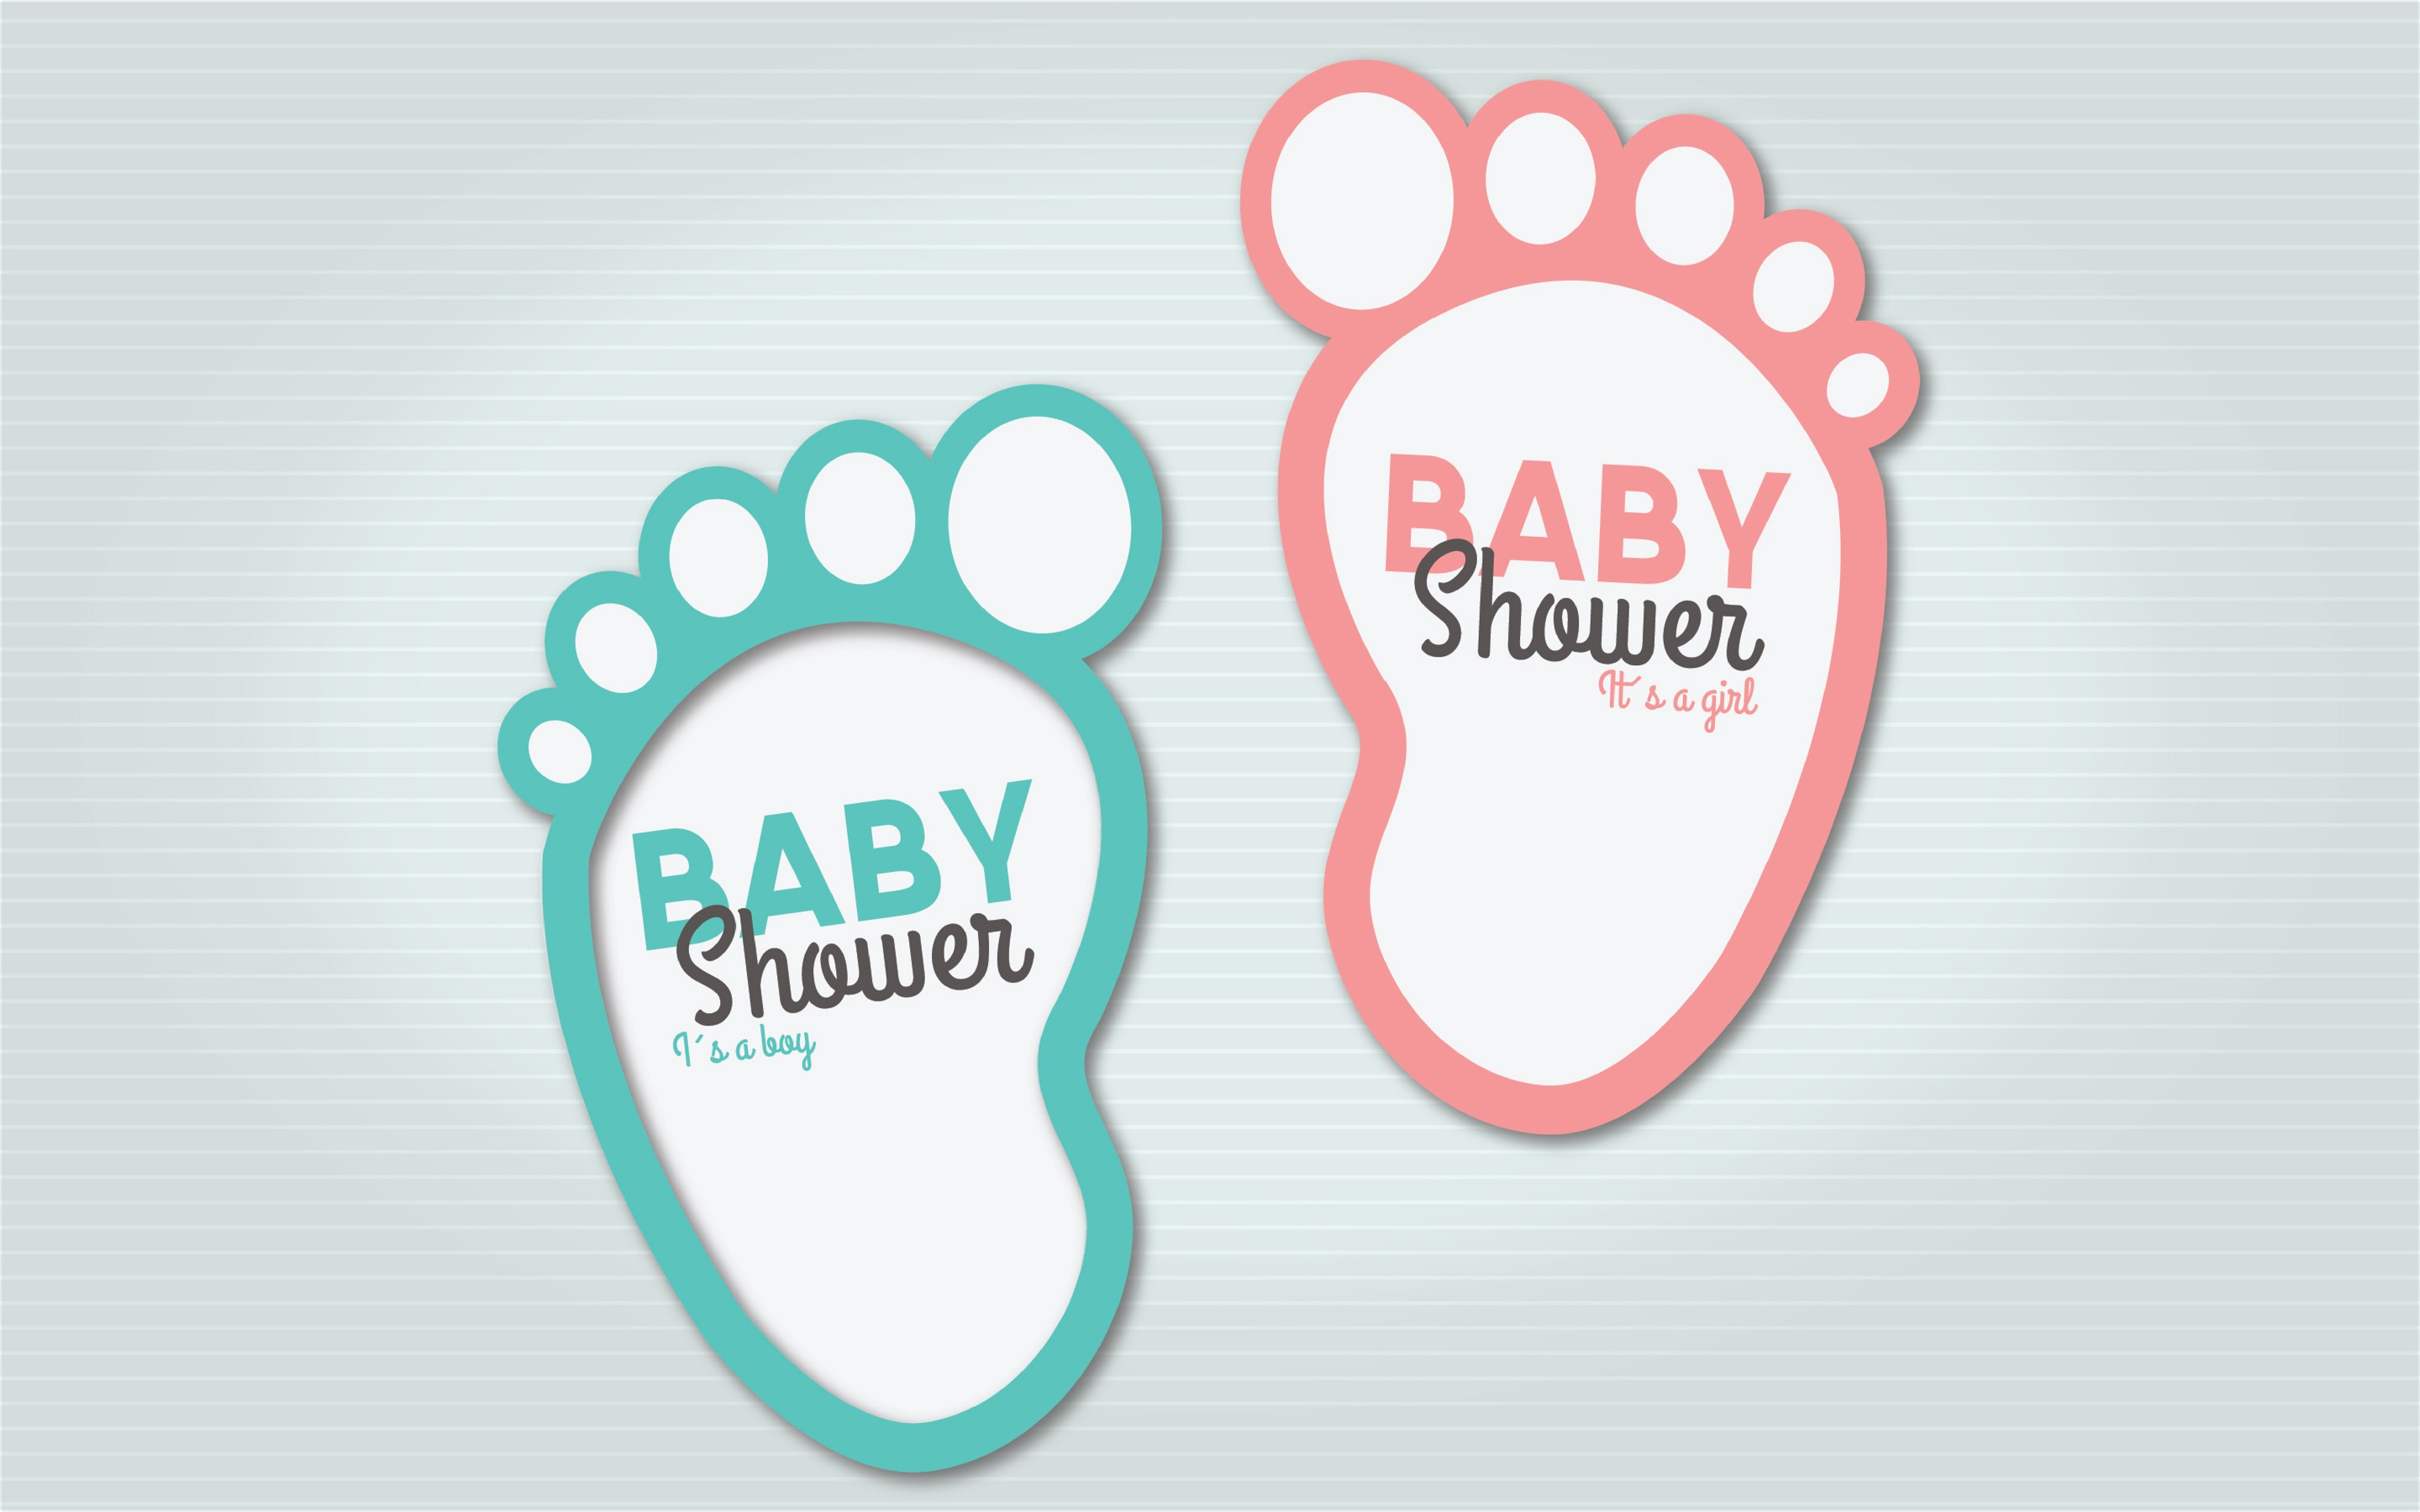 ways to save money when you have a baby baby couture india